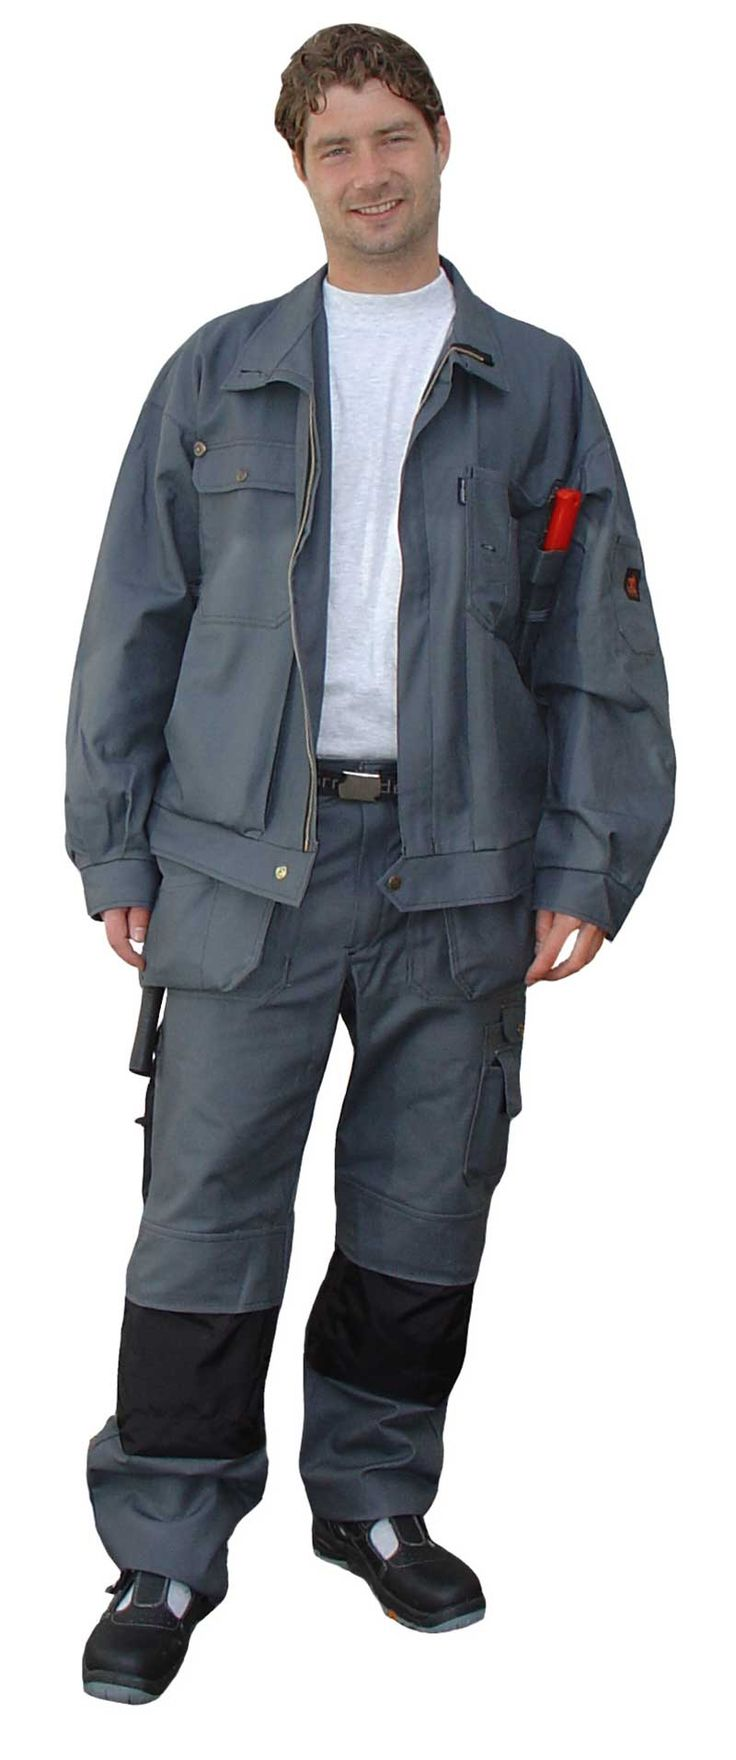 Clearance Item - CLEARANCE Items - products new home - Faceline Workwear_Carpenter_Work_Jacket_Grey by Björnkläder